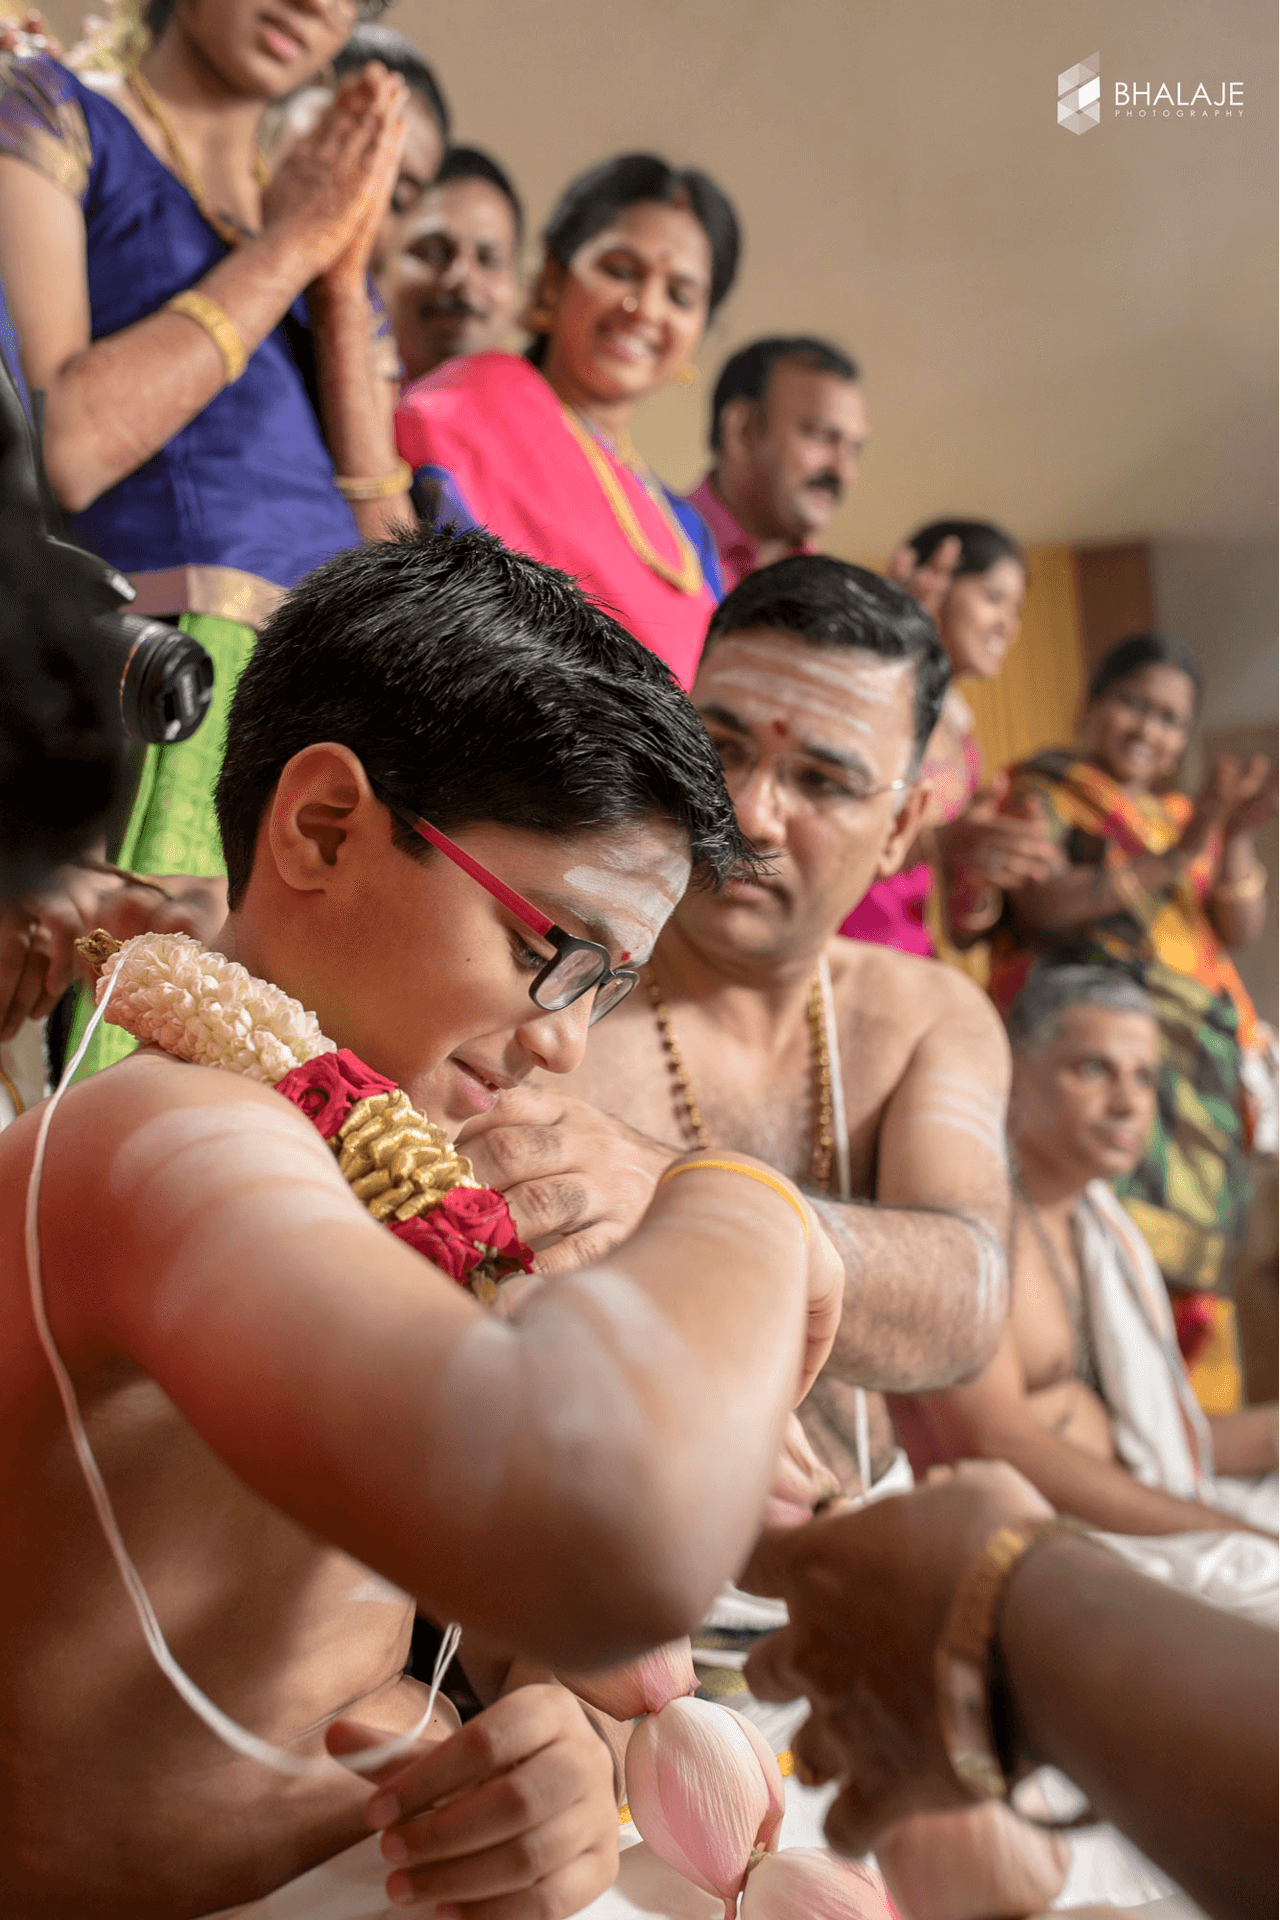 Thread Ceremony Photos,Thread Ceremony Photography,Thread Ceremony Photoshoot,Upanayanam, Upanayanam Photoshoot,Upanayanam Photography,Upanayana Ceremony